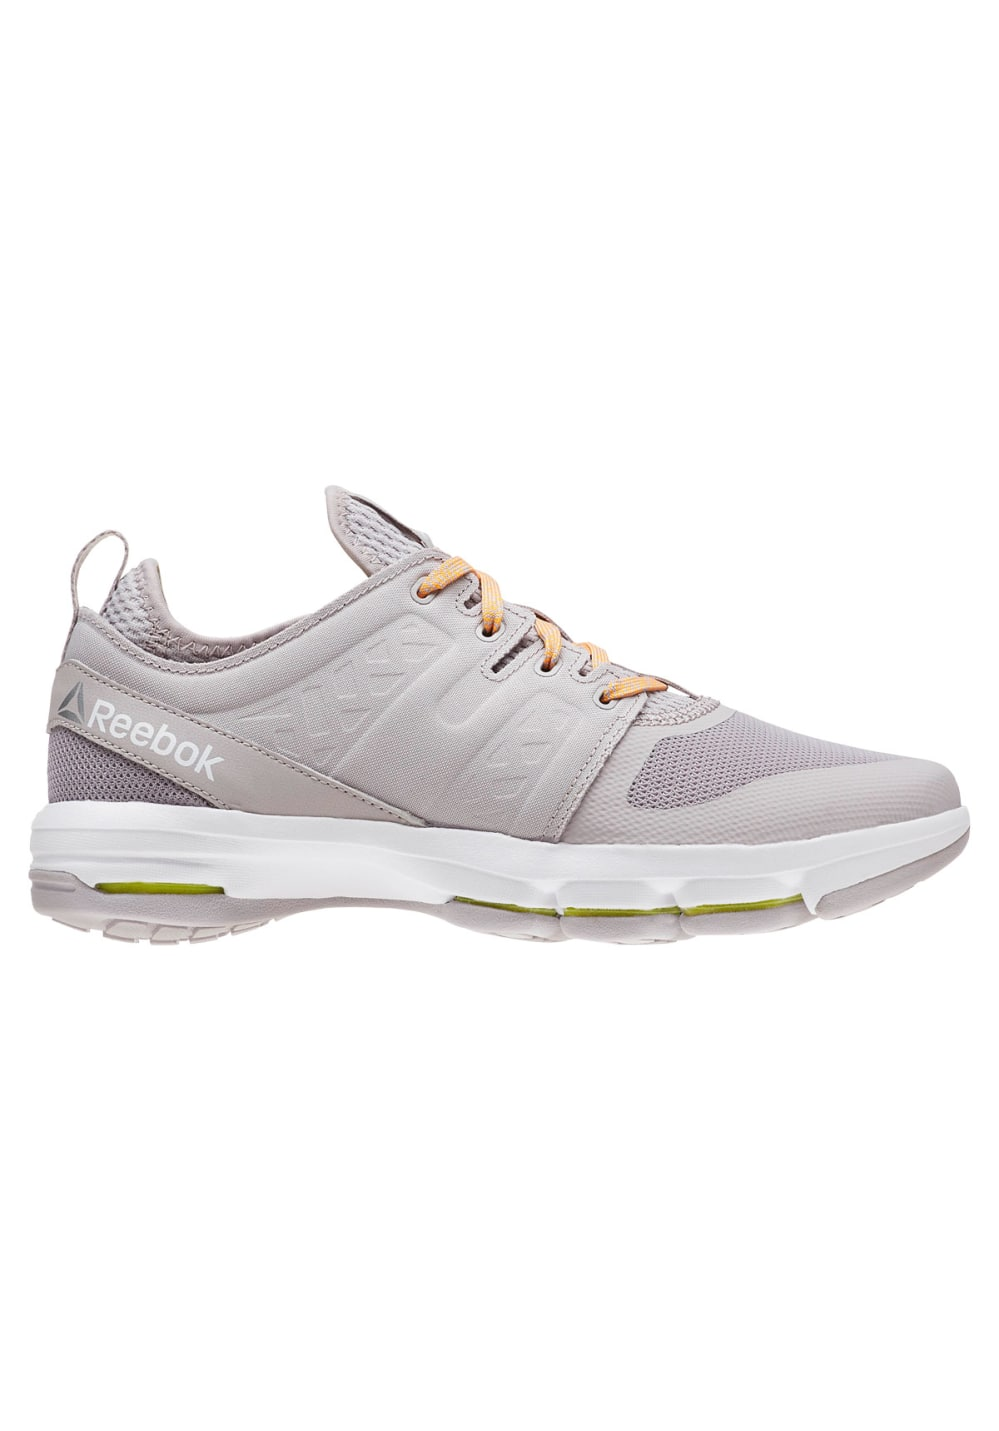 3b7c78cc4799 ... Reebok Cloudride DMX - Fitness shoes for Women - Grey. Back to  Overview. 1  2  3. Previous